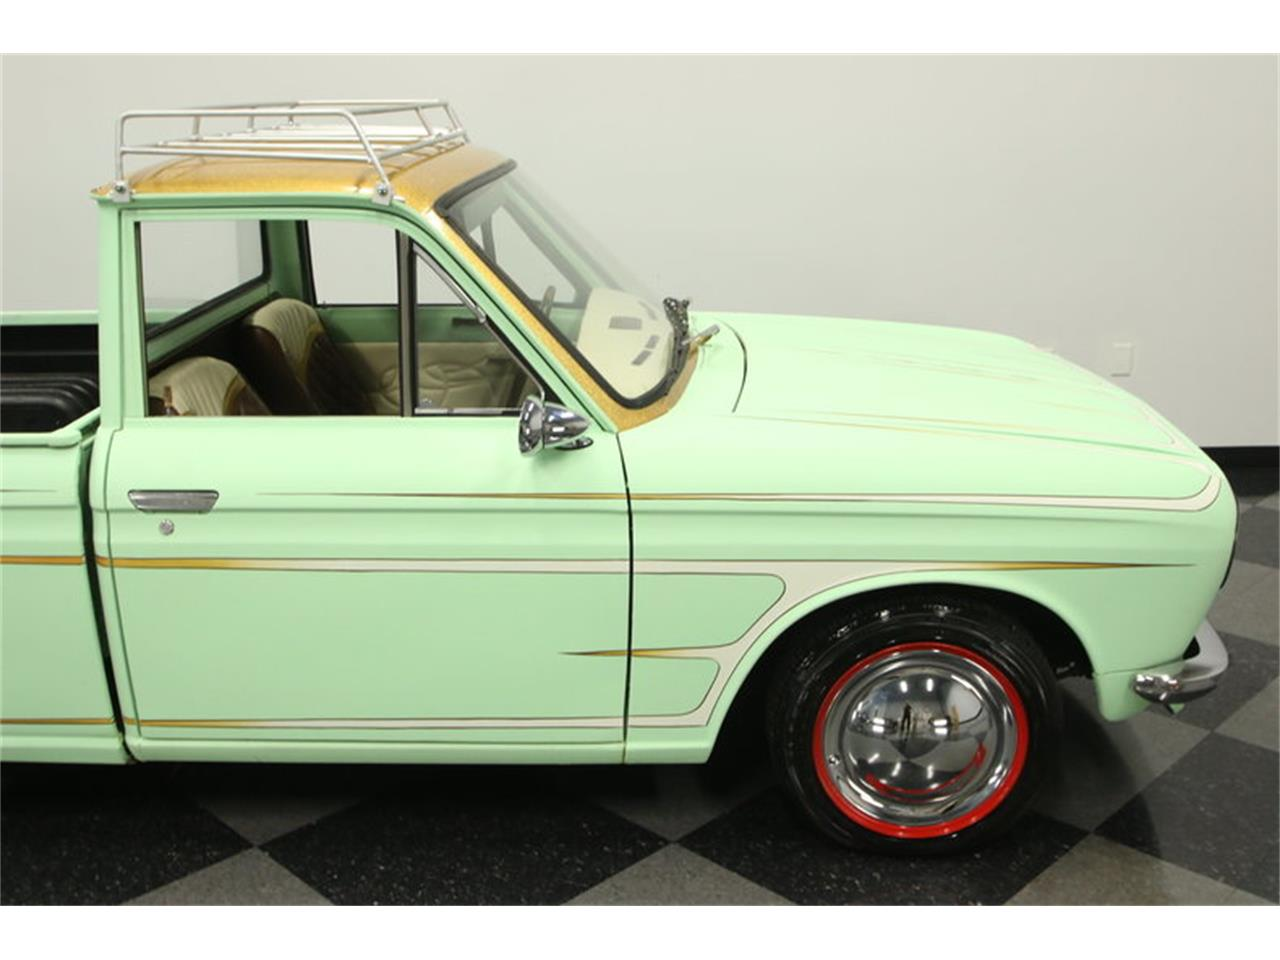 Large Picture of '72 Datsun 1600 520 Pickup located in Florida - $9,995.00 Offered by Streetside Classics - Tampa - MB90